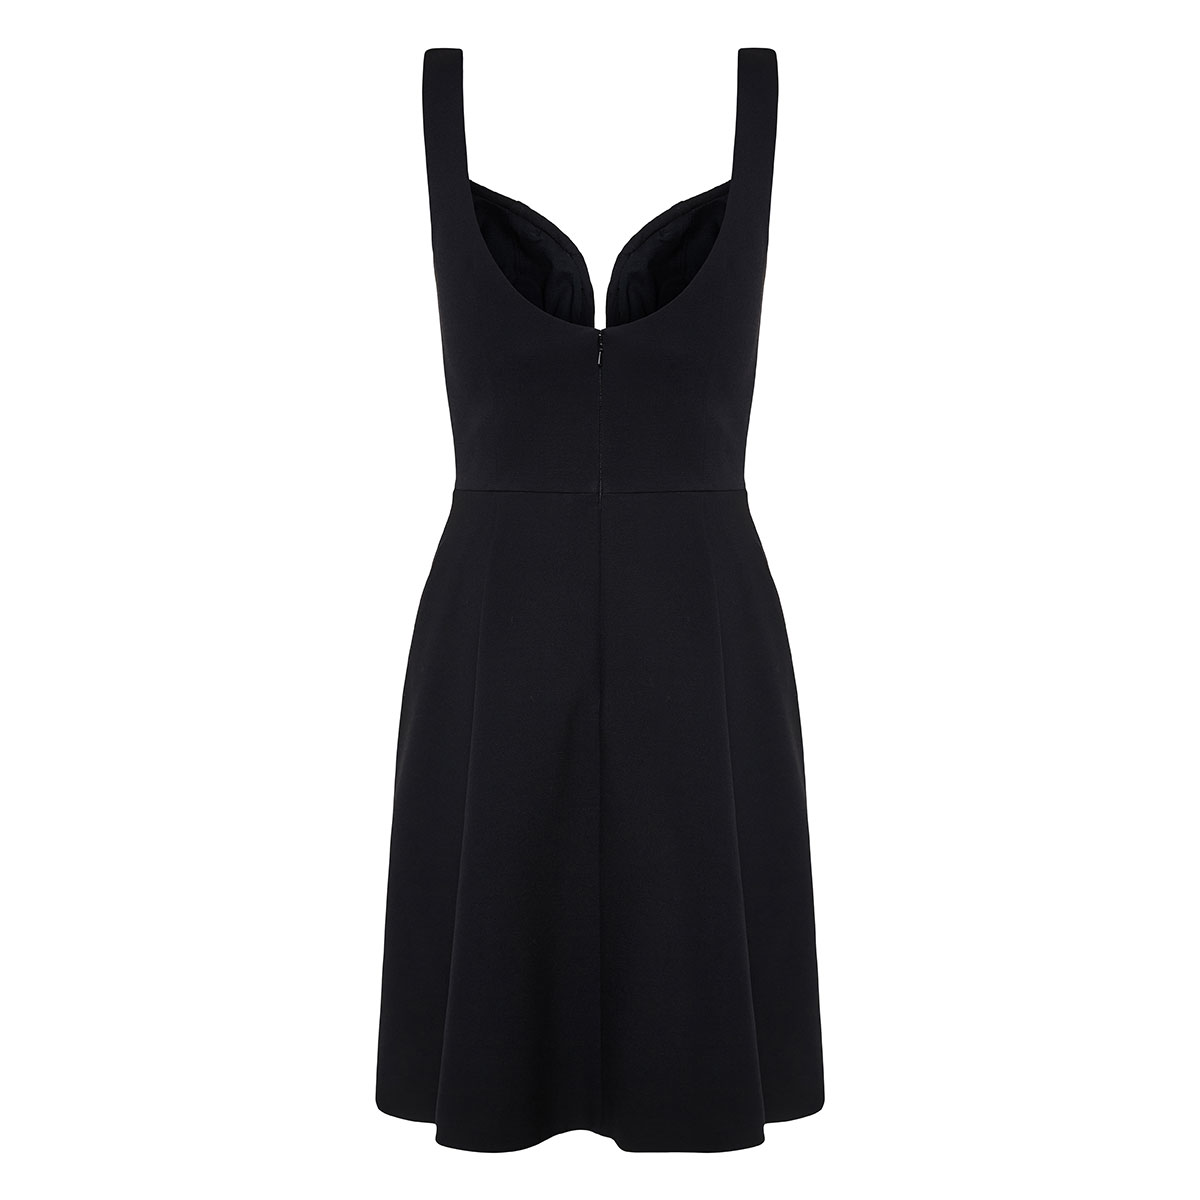 Asymmetric corset dress